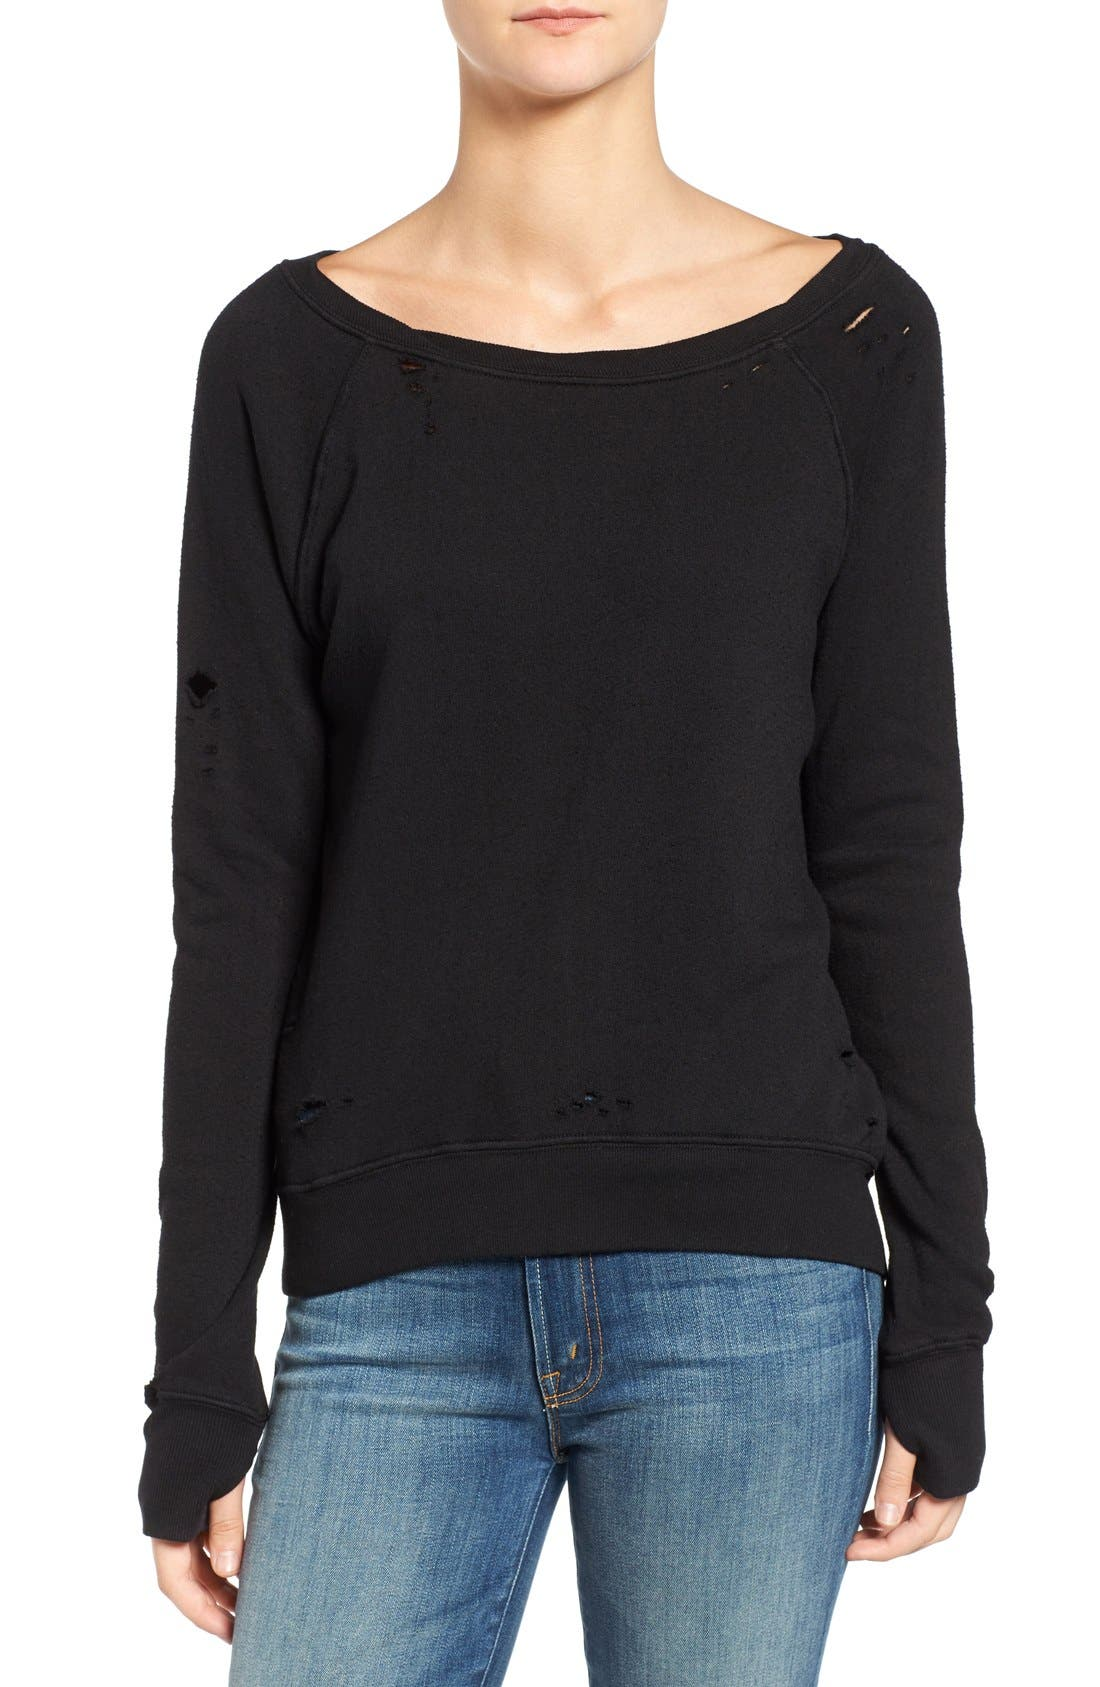 'Annie' Destroyed High/Low Sweatshirt,                             Main thumbnail 1, color,                             001